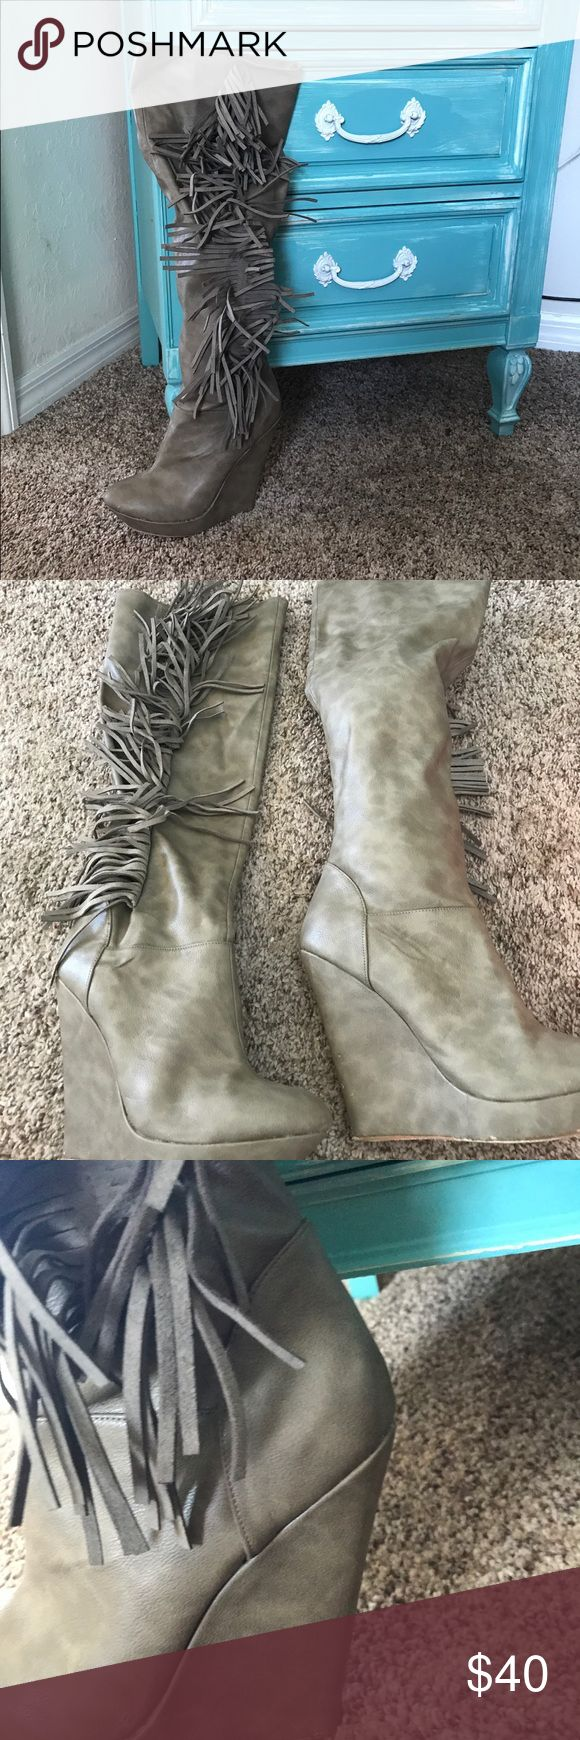 Victoria's Secret Catalog knee high boots Taupe tassel Sz 10 worn 1 time Moda International Shoes Over the Knee Boots